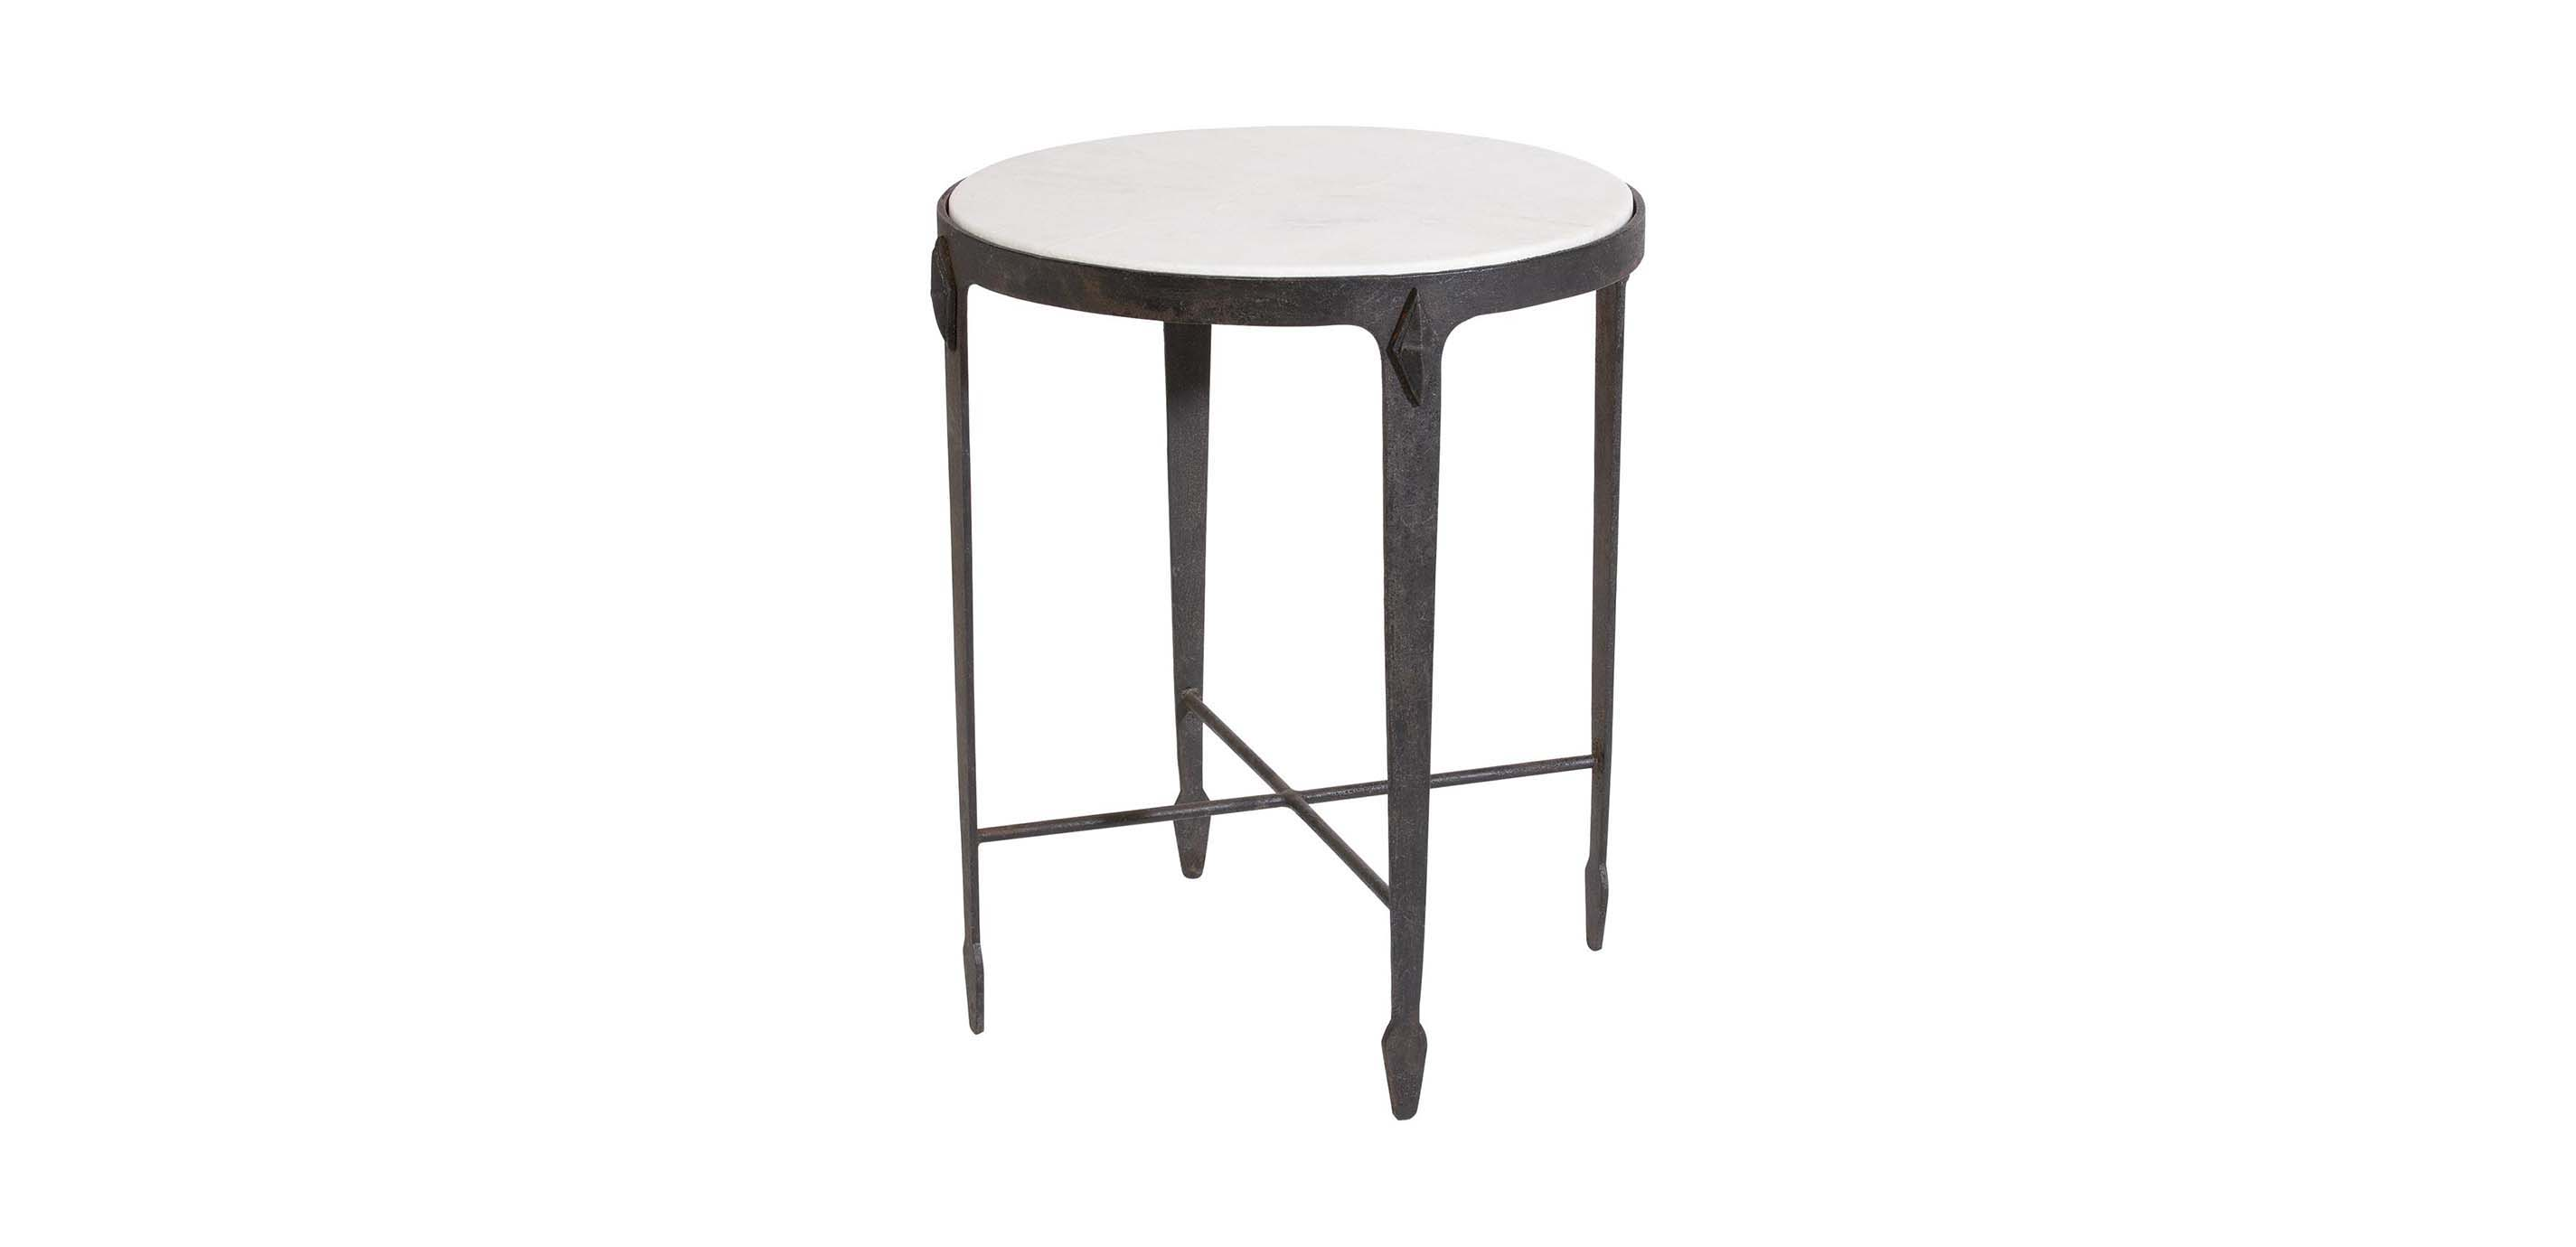 images furniture en null connor allen and side tables ca ethan table accent room living shop